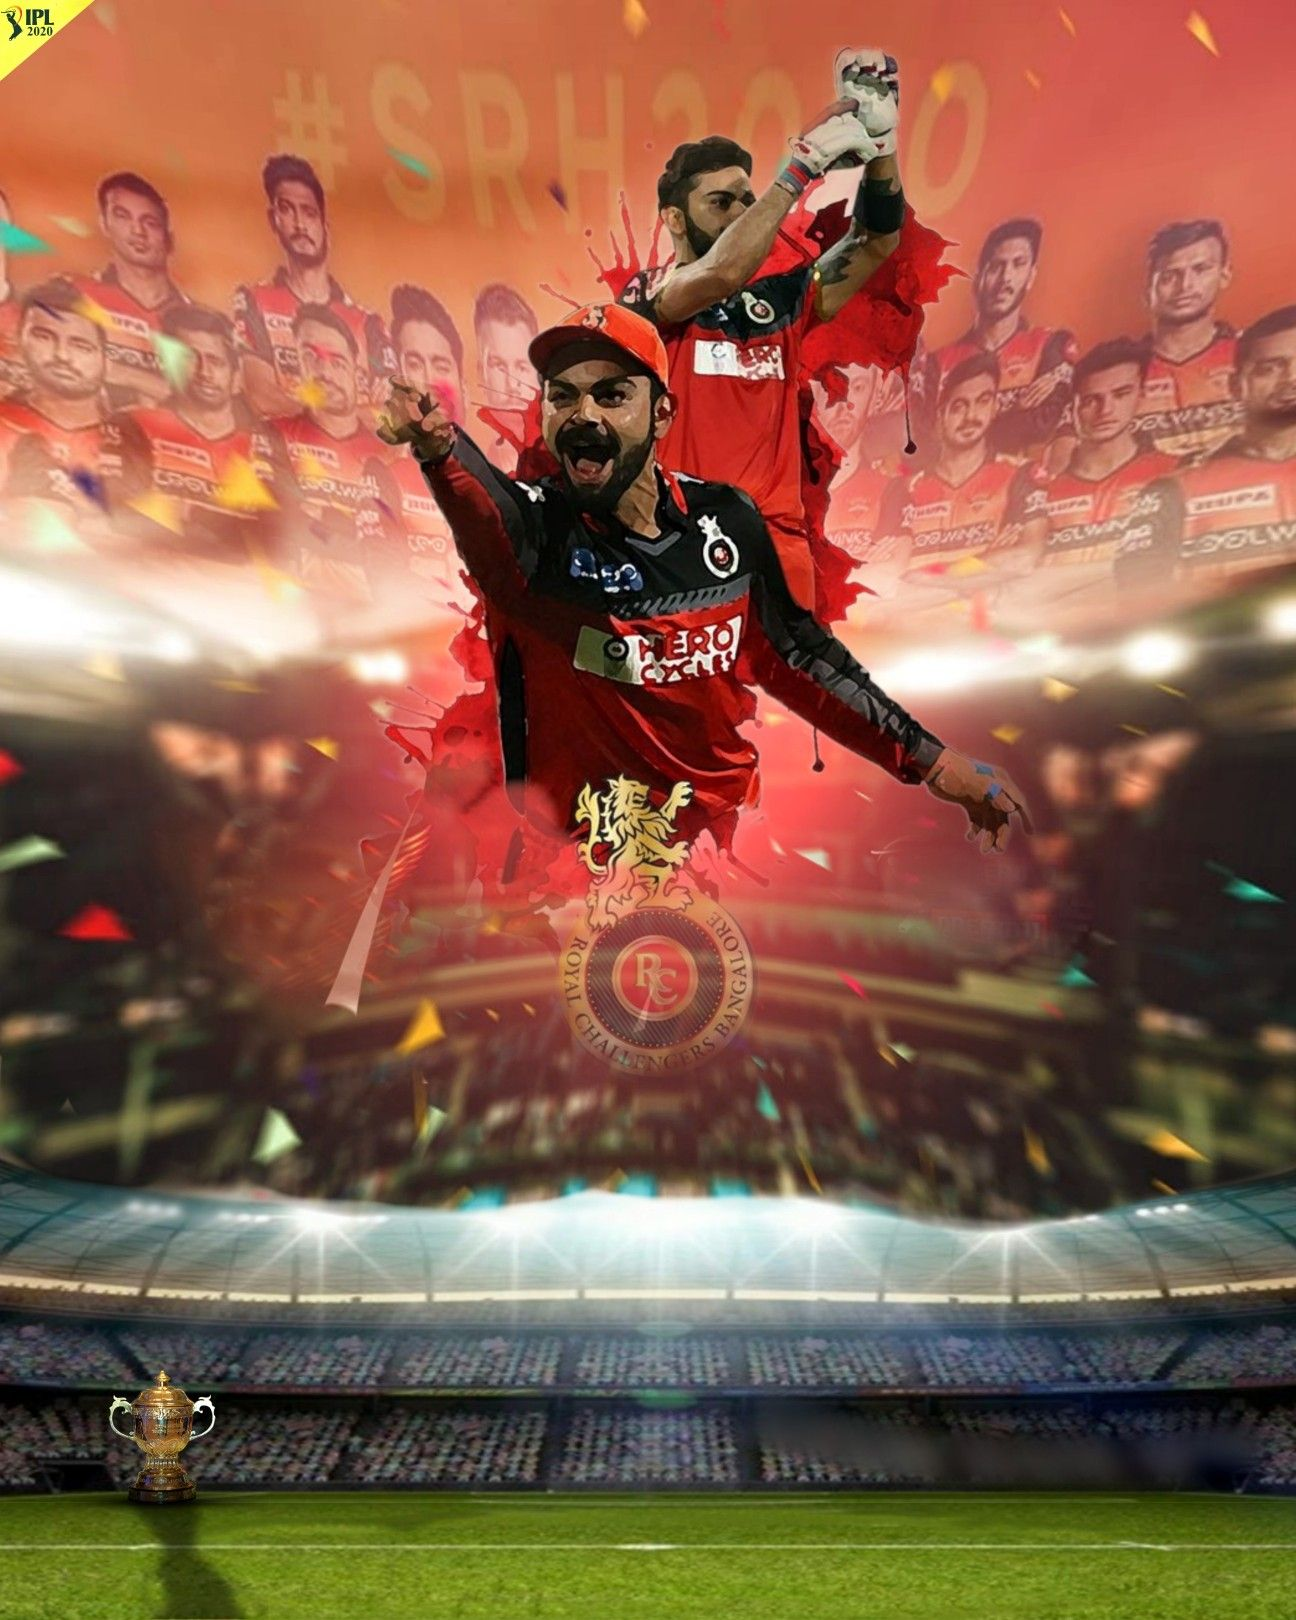 Ipl Editing Background Download Hd In 2021 Royal Challengers Bangalore Cricket Wallpapers Ipl Csk vs rcb hd wallpapers 1080p download